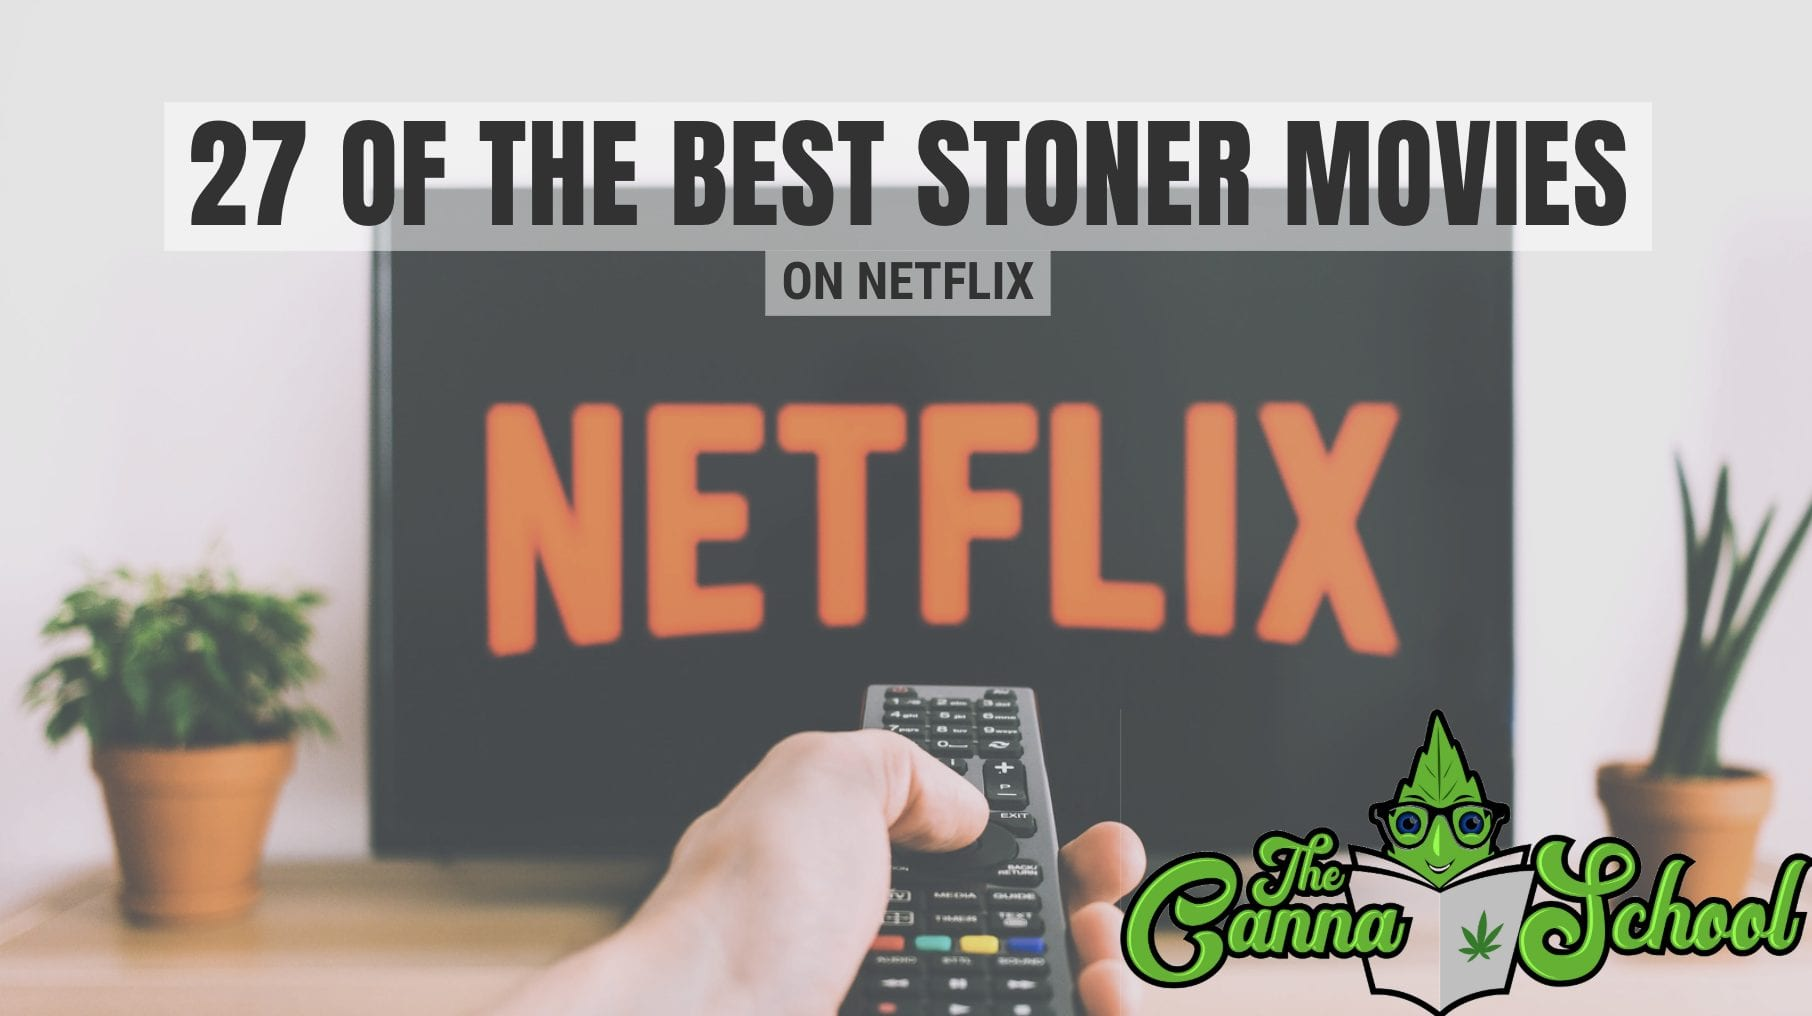 27 of The Best Stoner Movies Blog Graphic